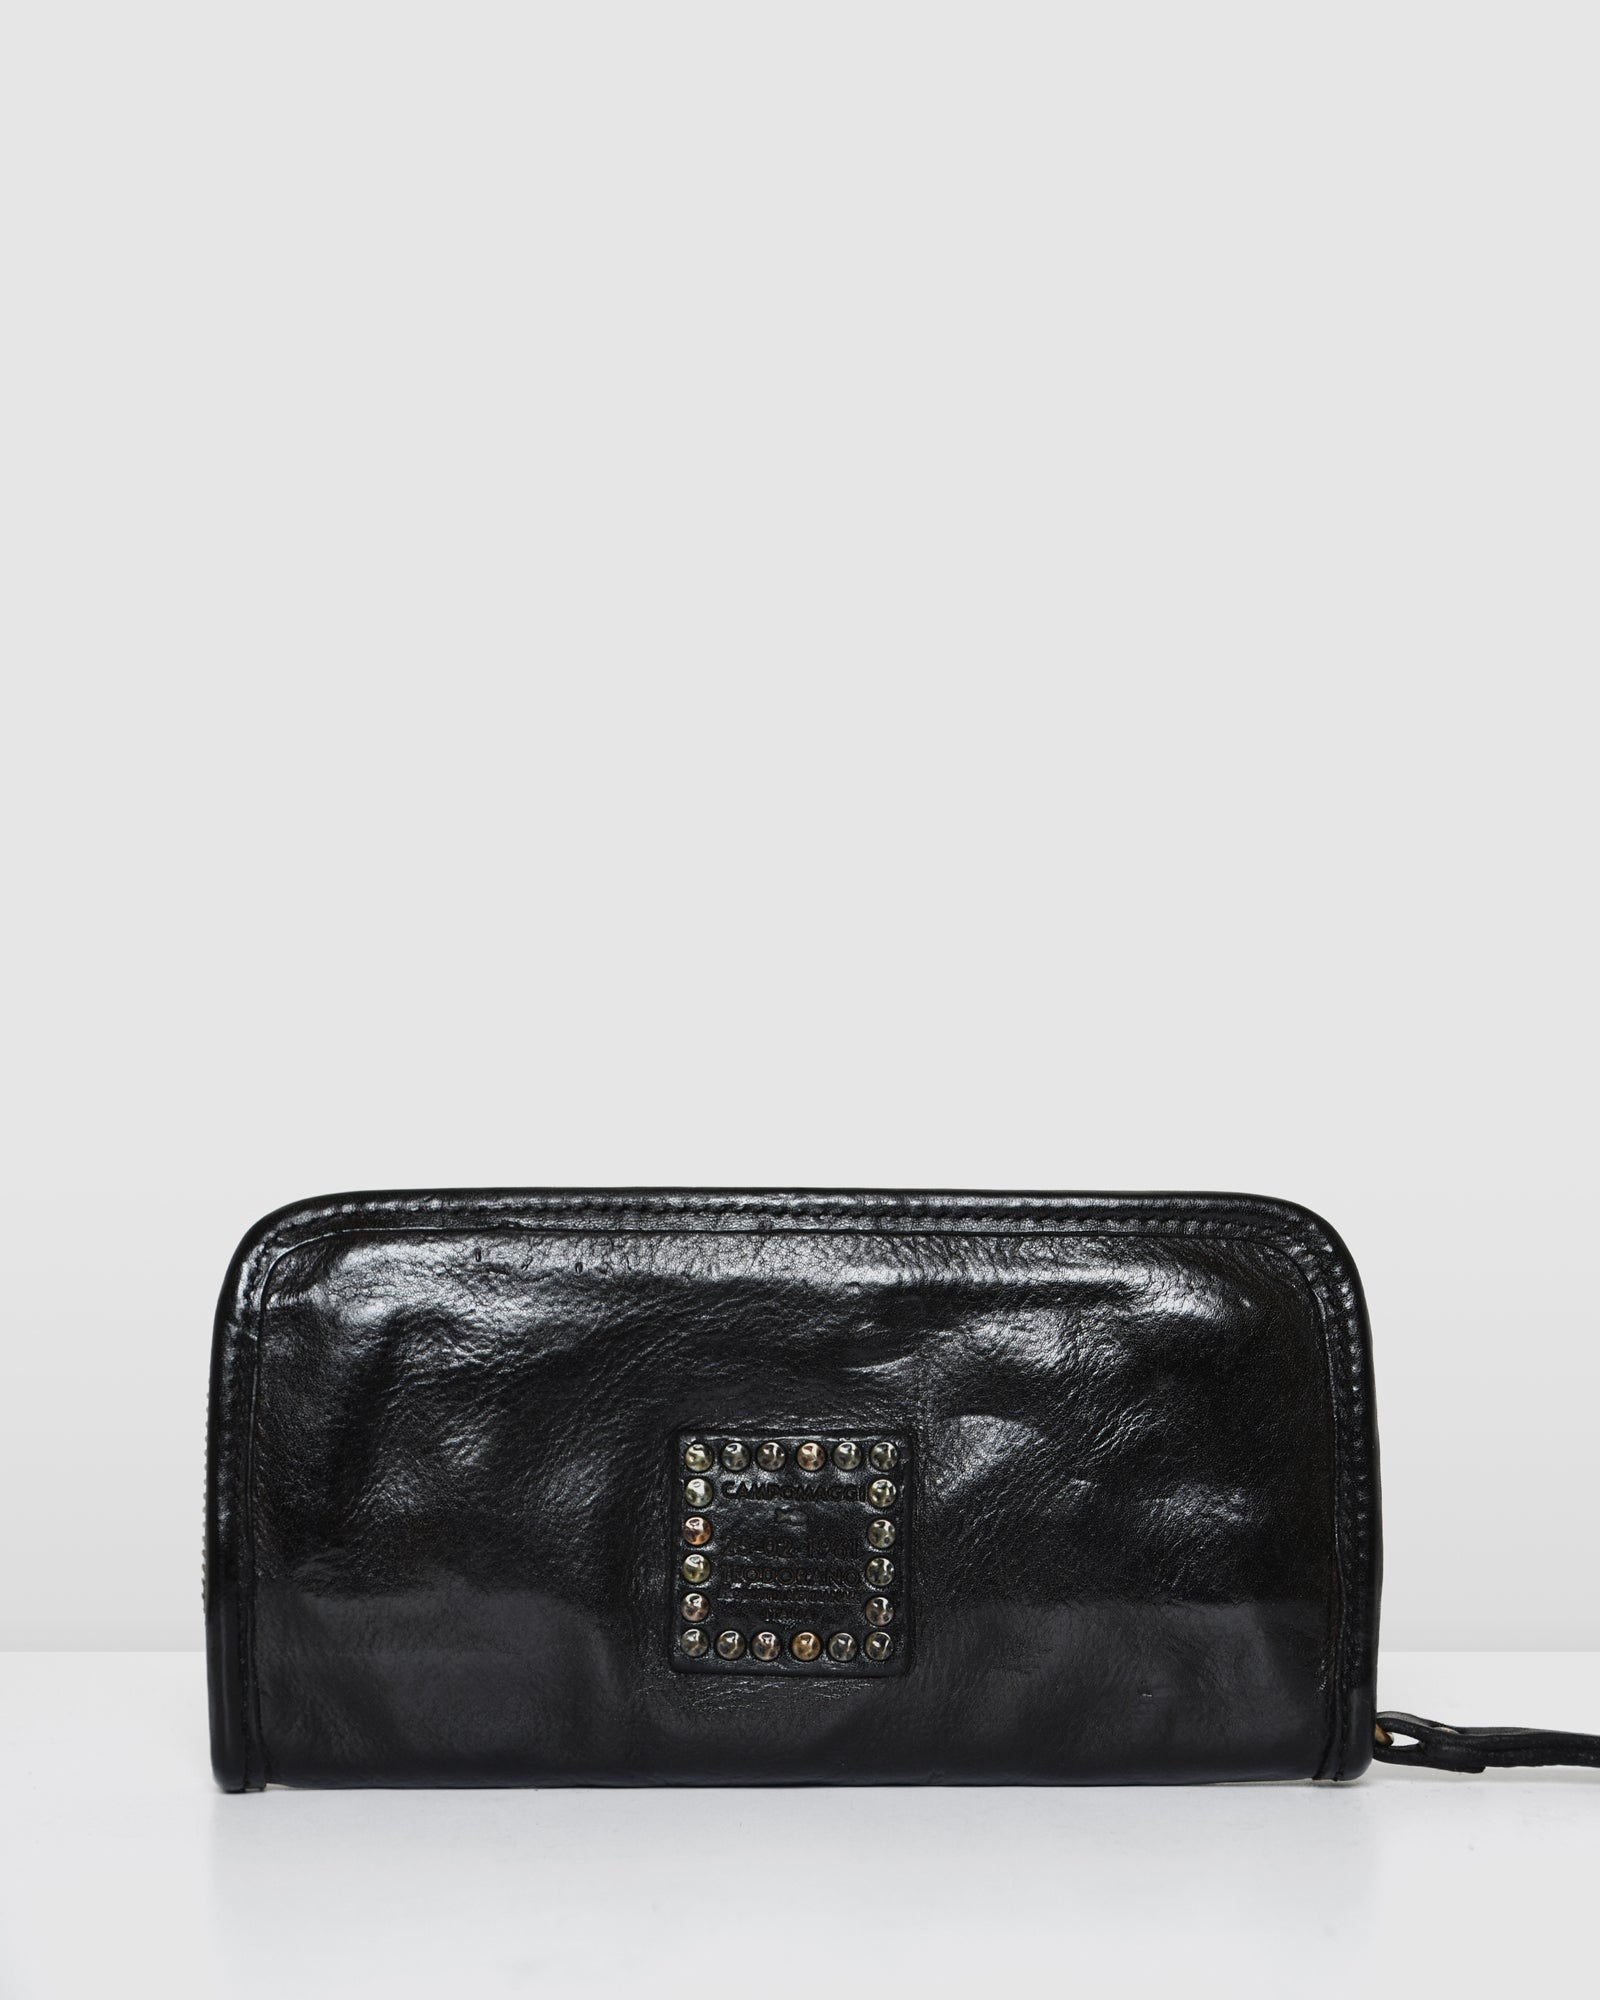 CAMPOMAGGI OCTAVIA WALLET BLACK LEATHER